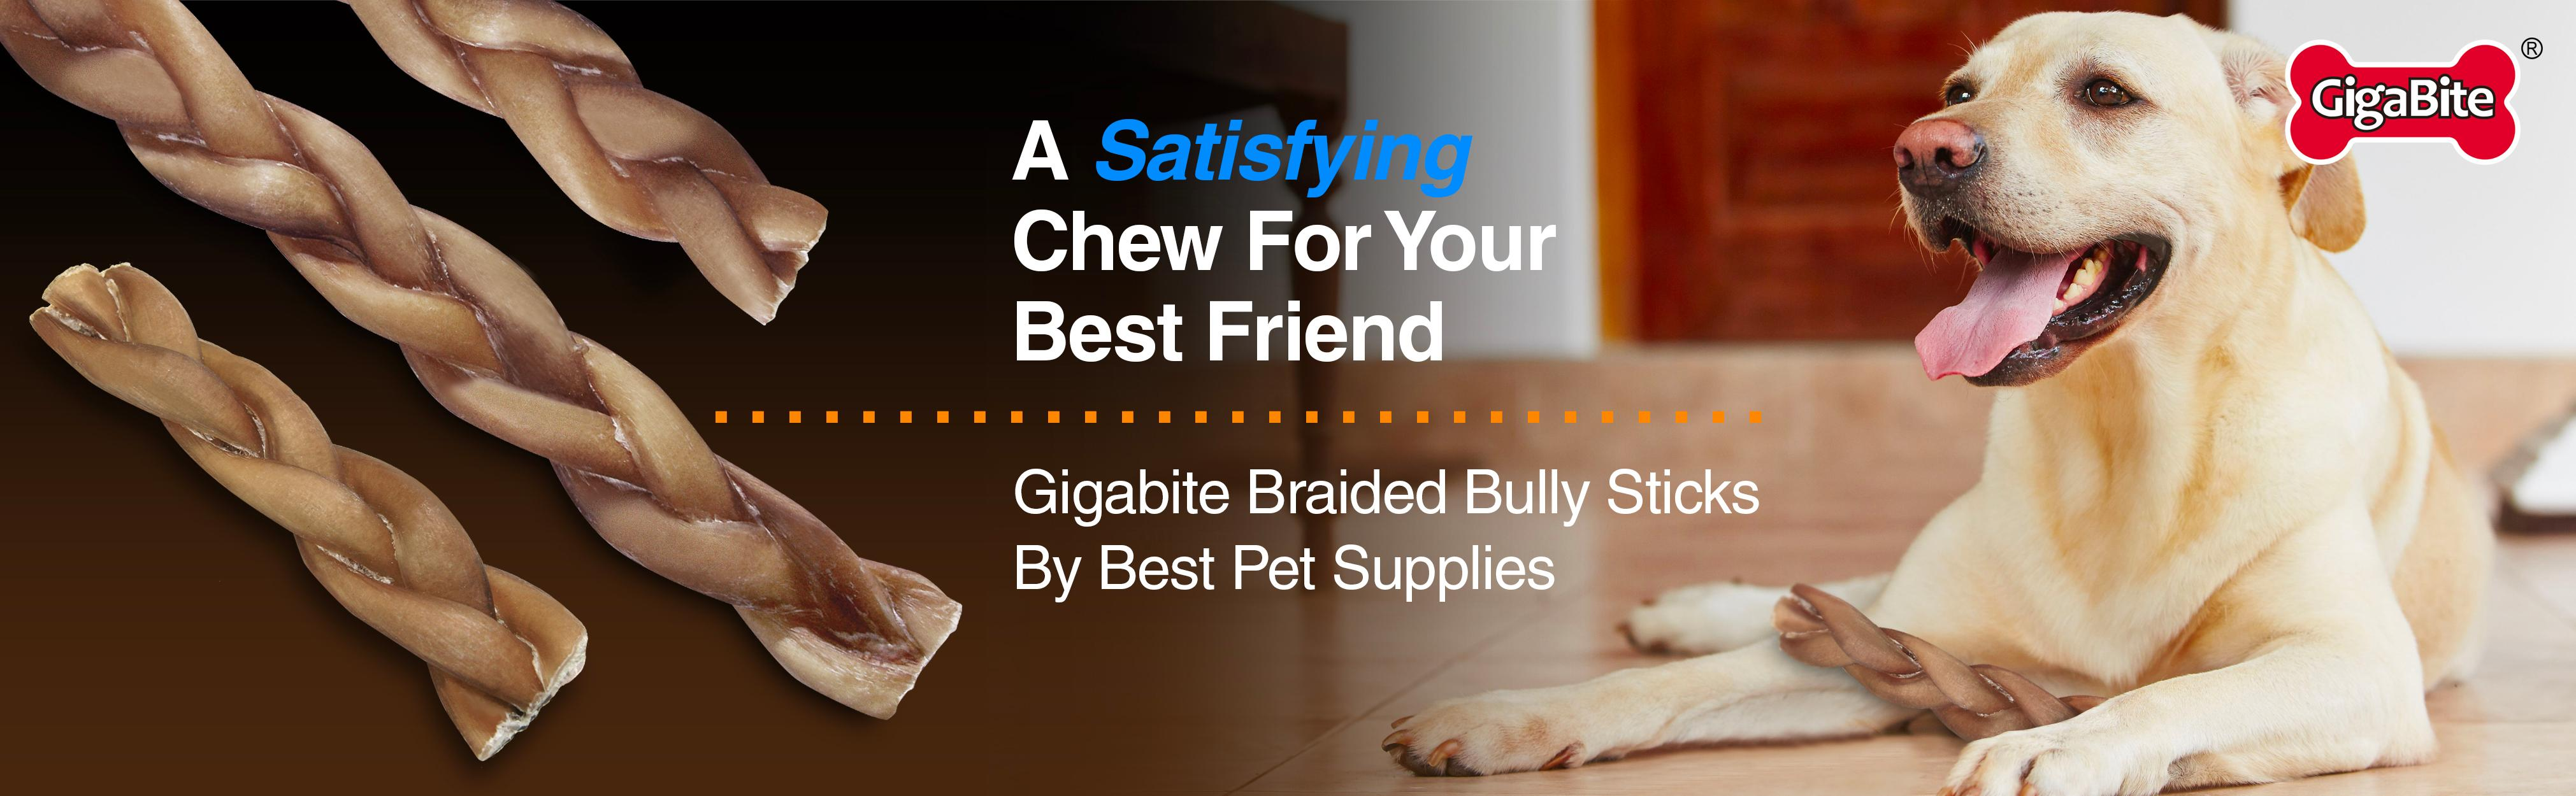 gigabite by best pet supplies usda fda certified odor free braided bully sticks. Black Bedroom Furniture Sets. Home Design Ideas